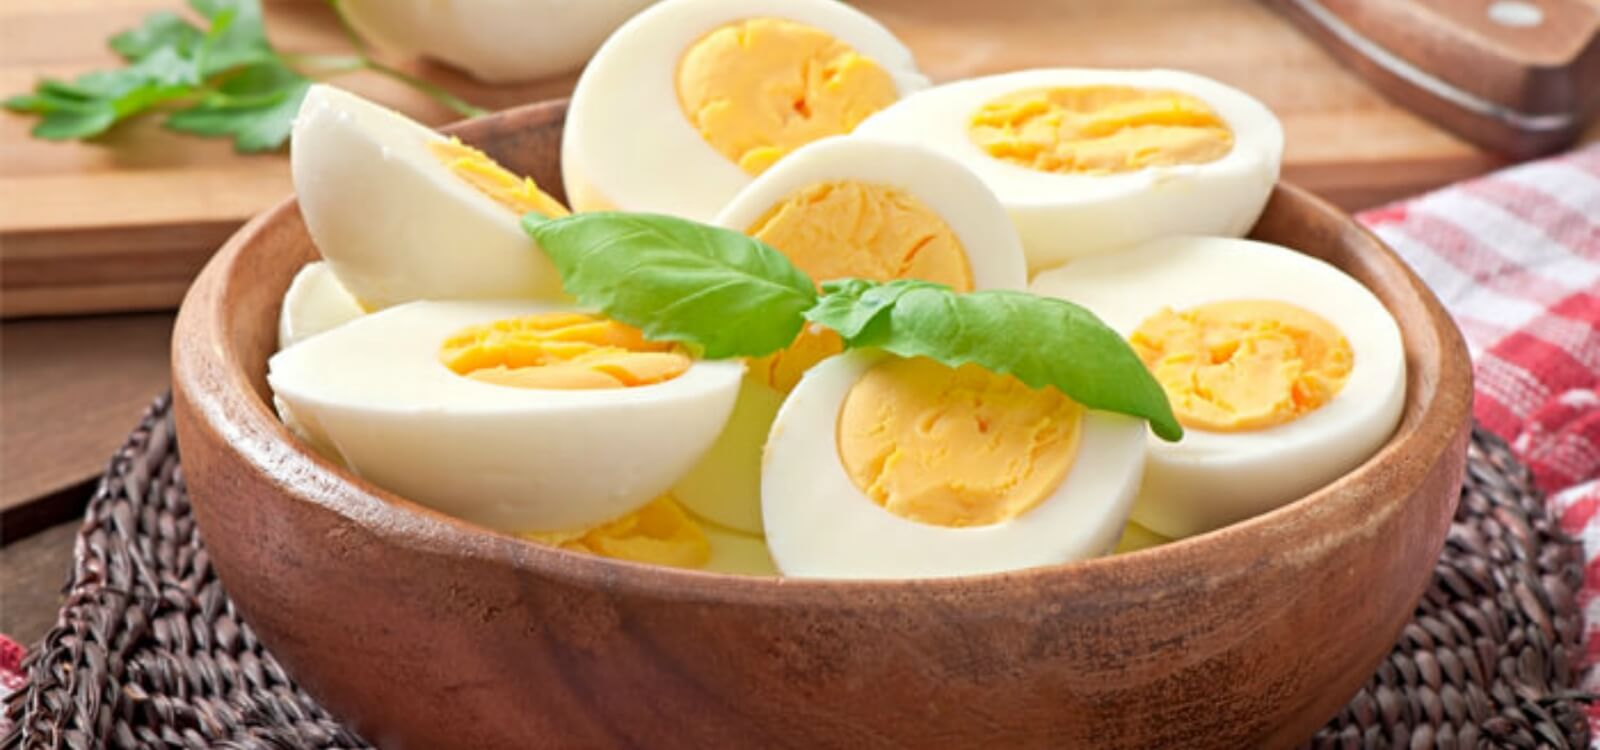 whole eggs build muscle